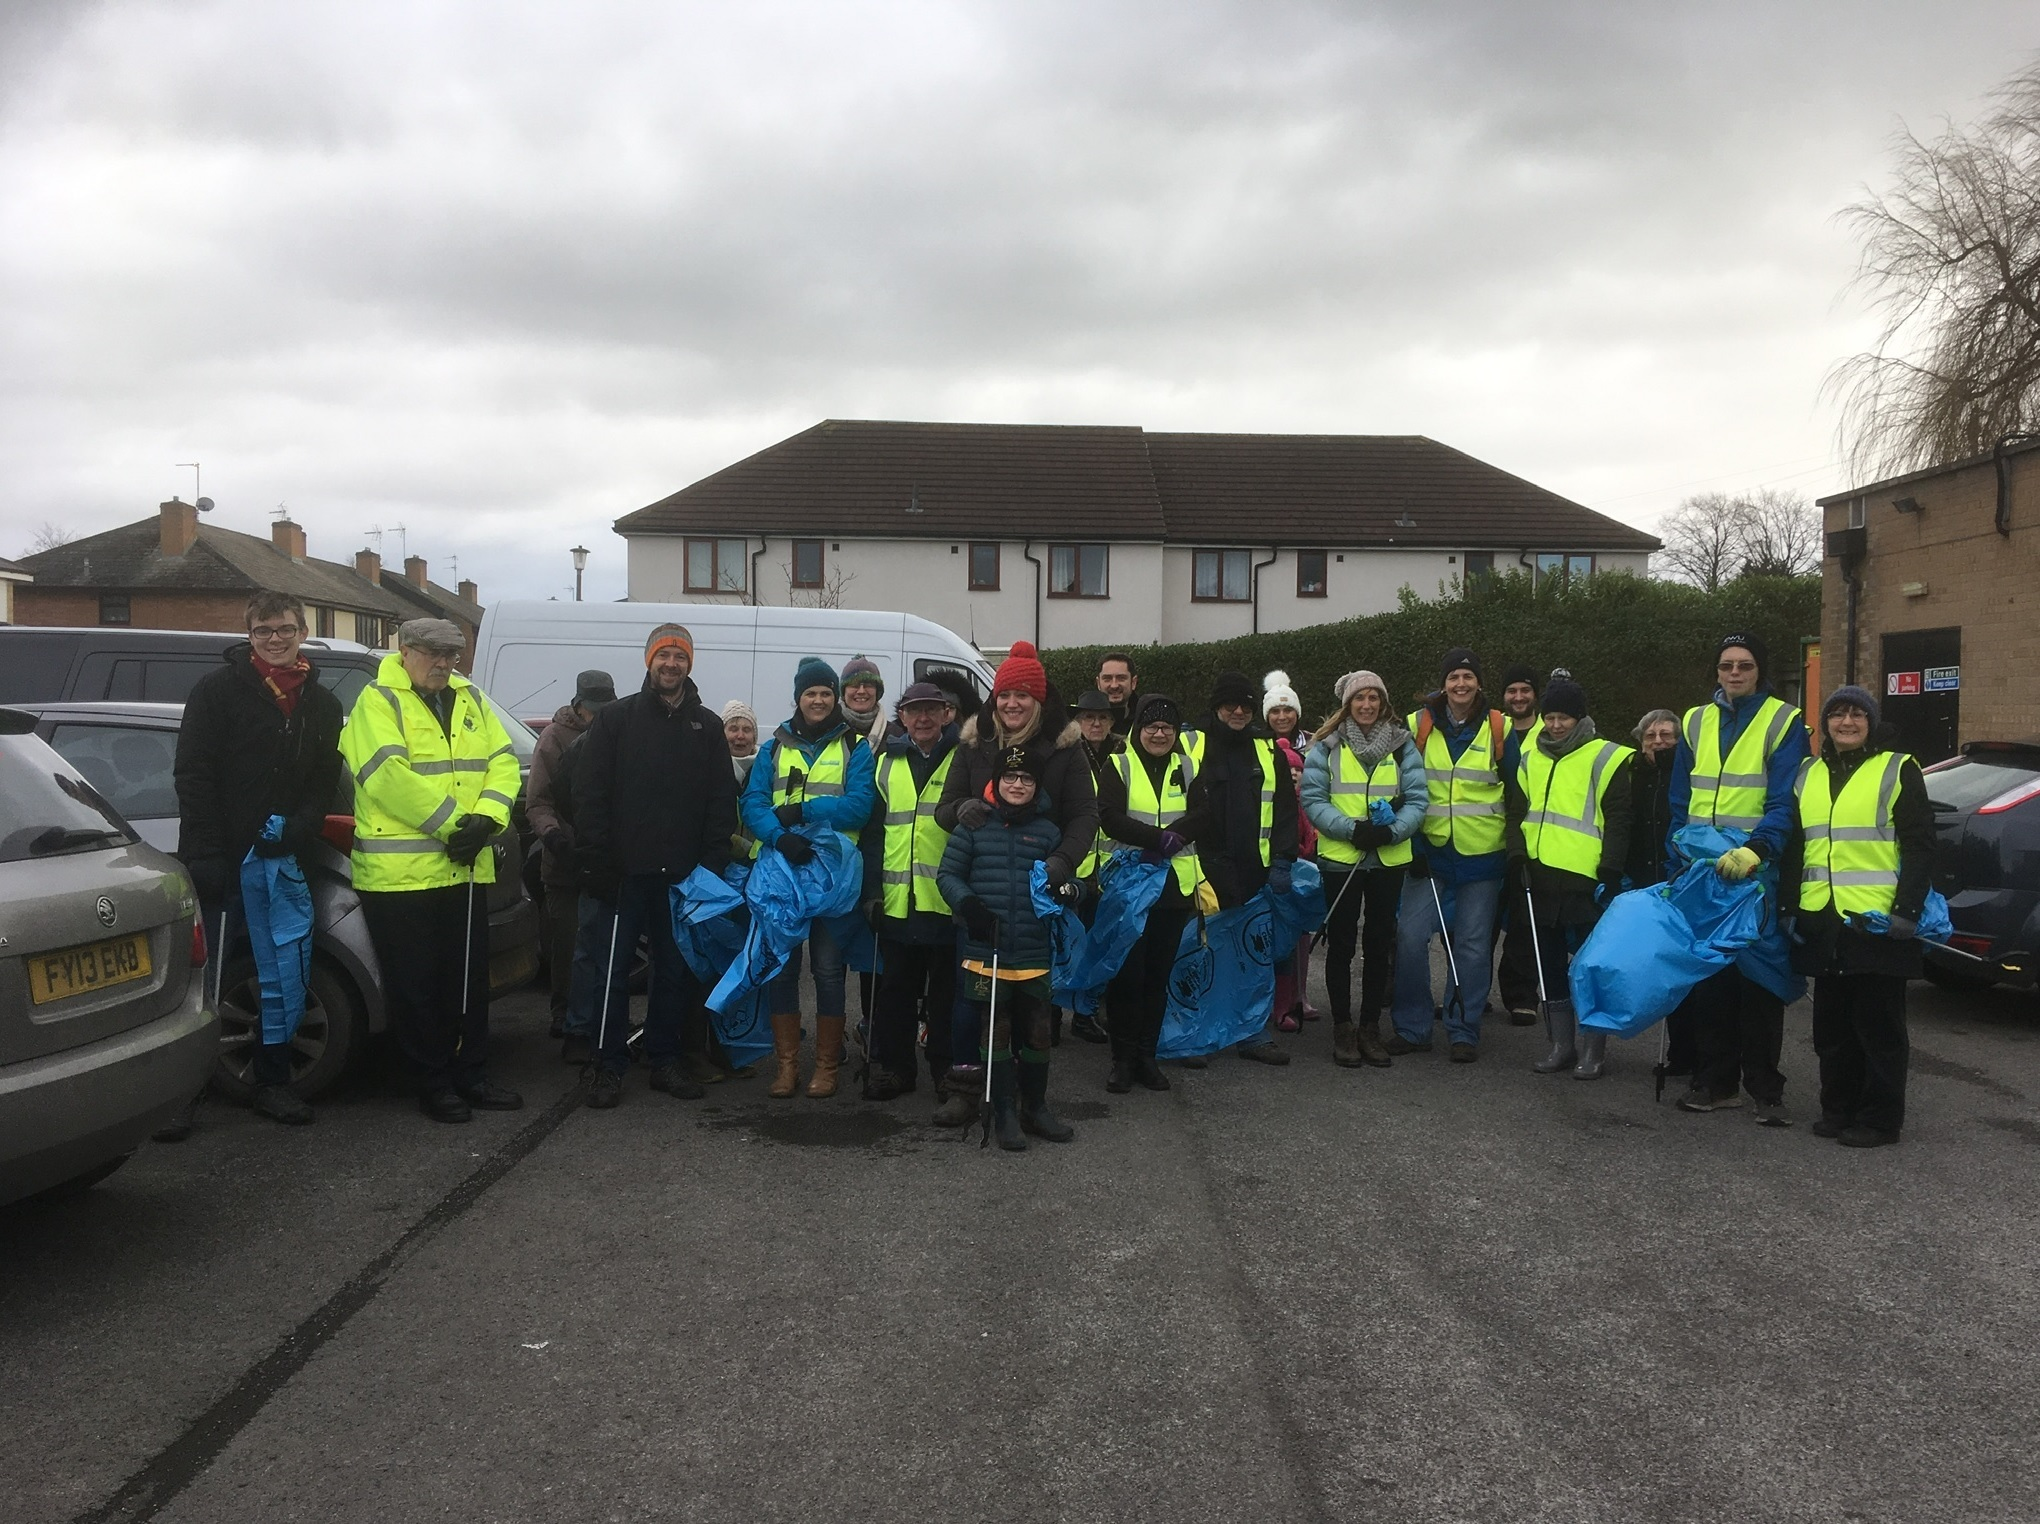 TIDY: The Wombles of Hambleton have collected more than 100 bags of rubbish in January alone